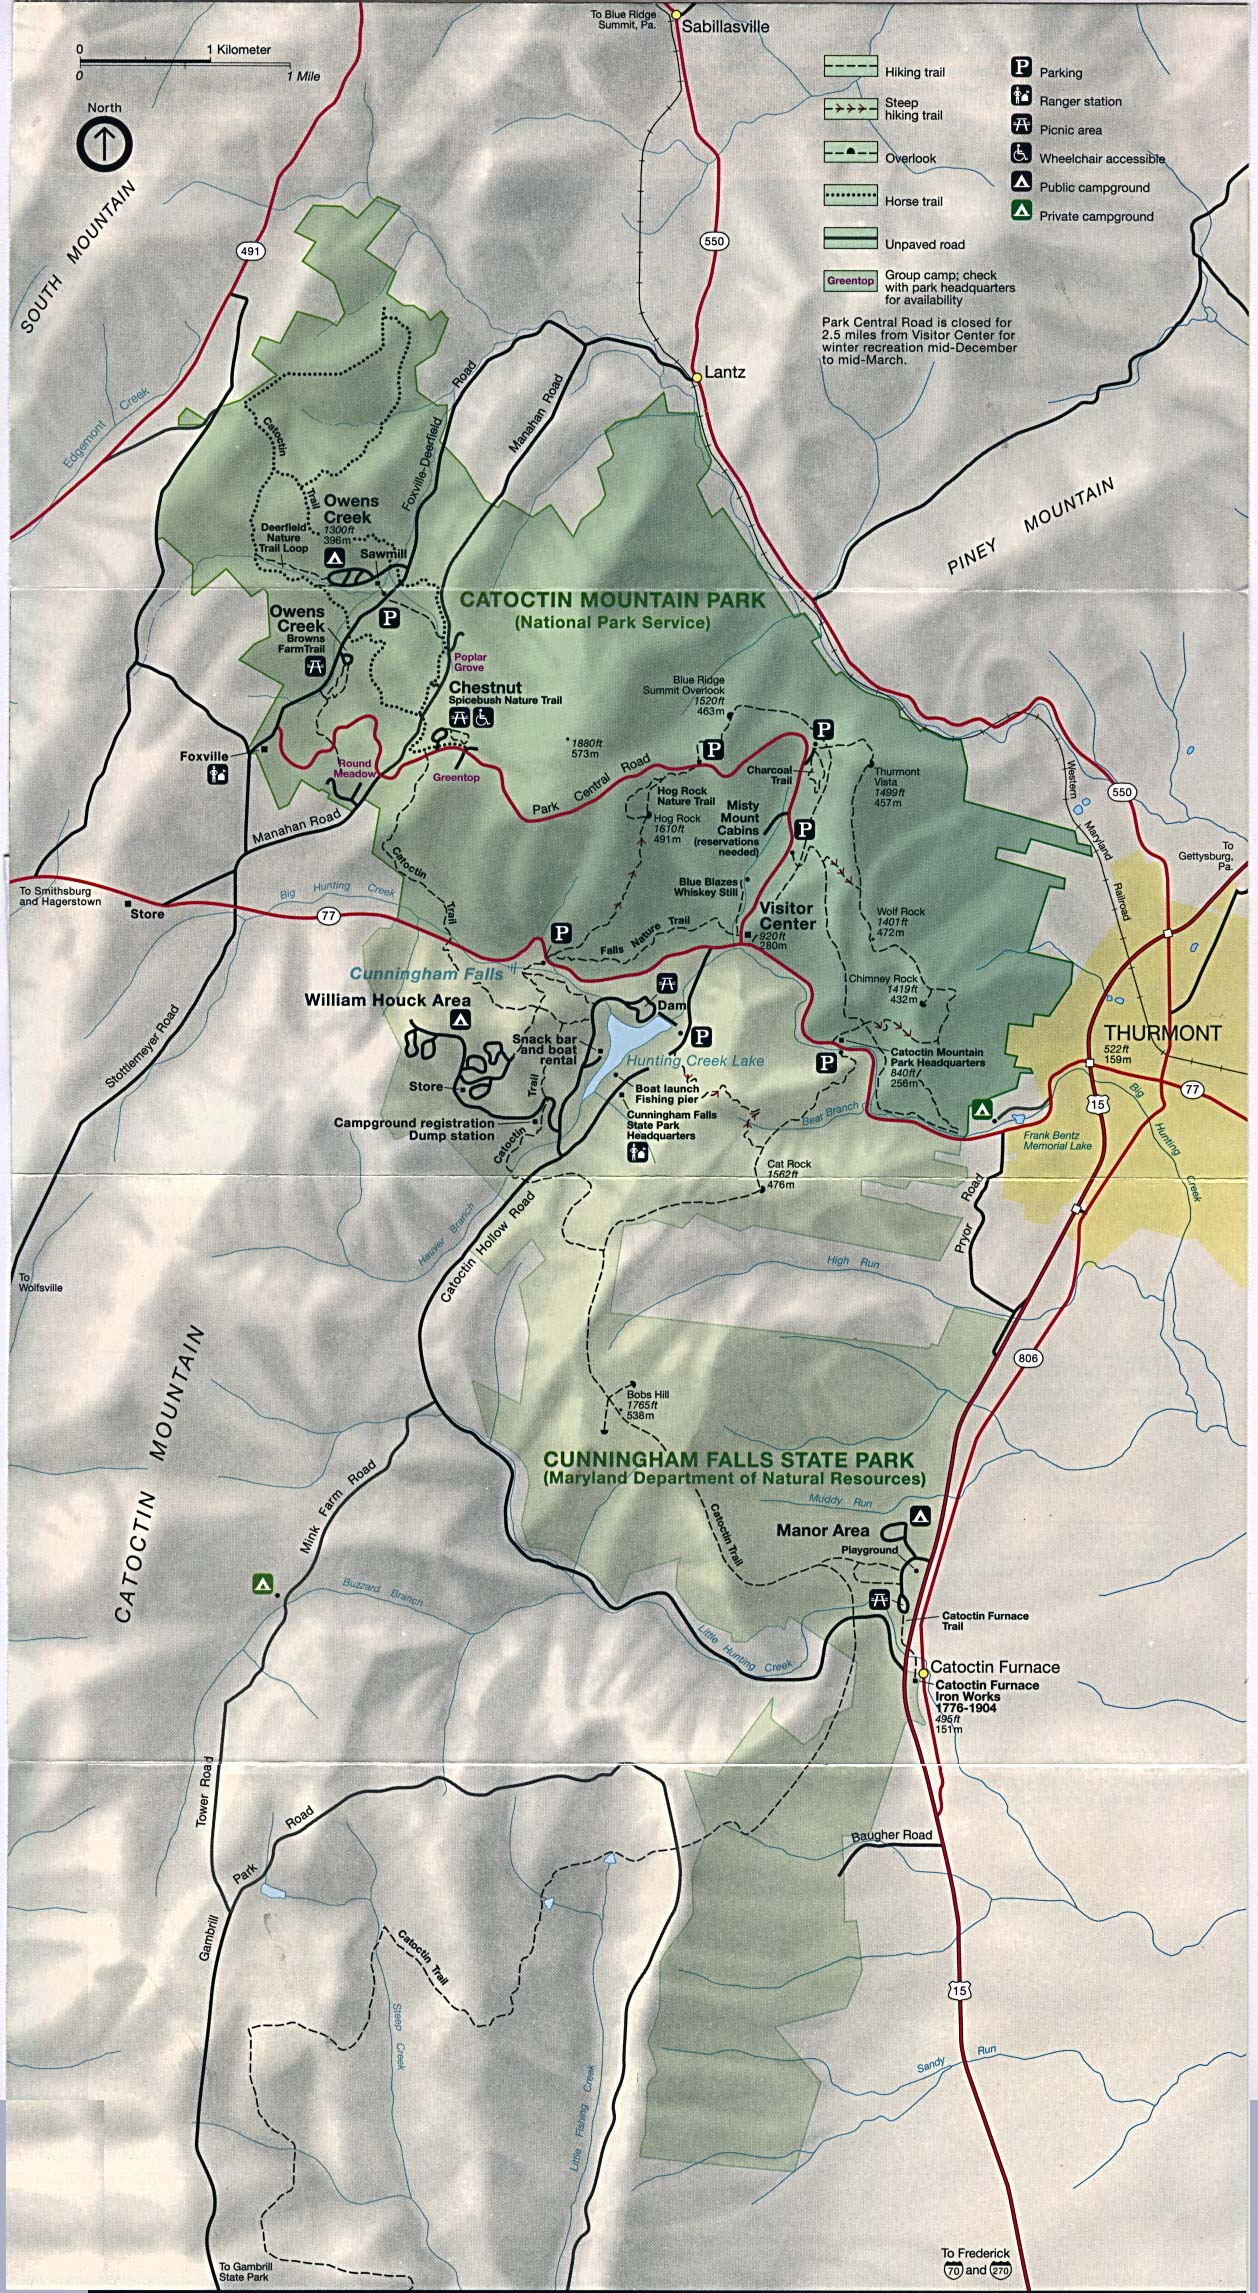 Maps of United States National Parks, Monuments and Historic Sites Catoctin Mountain Park [Maryland] (Park Map) 1995 (588K)